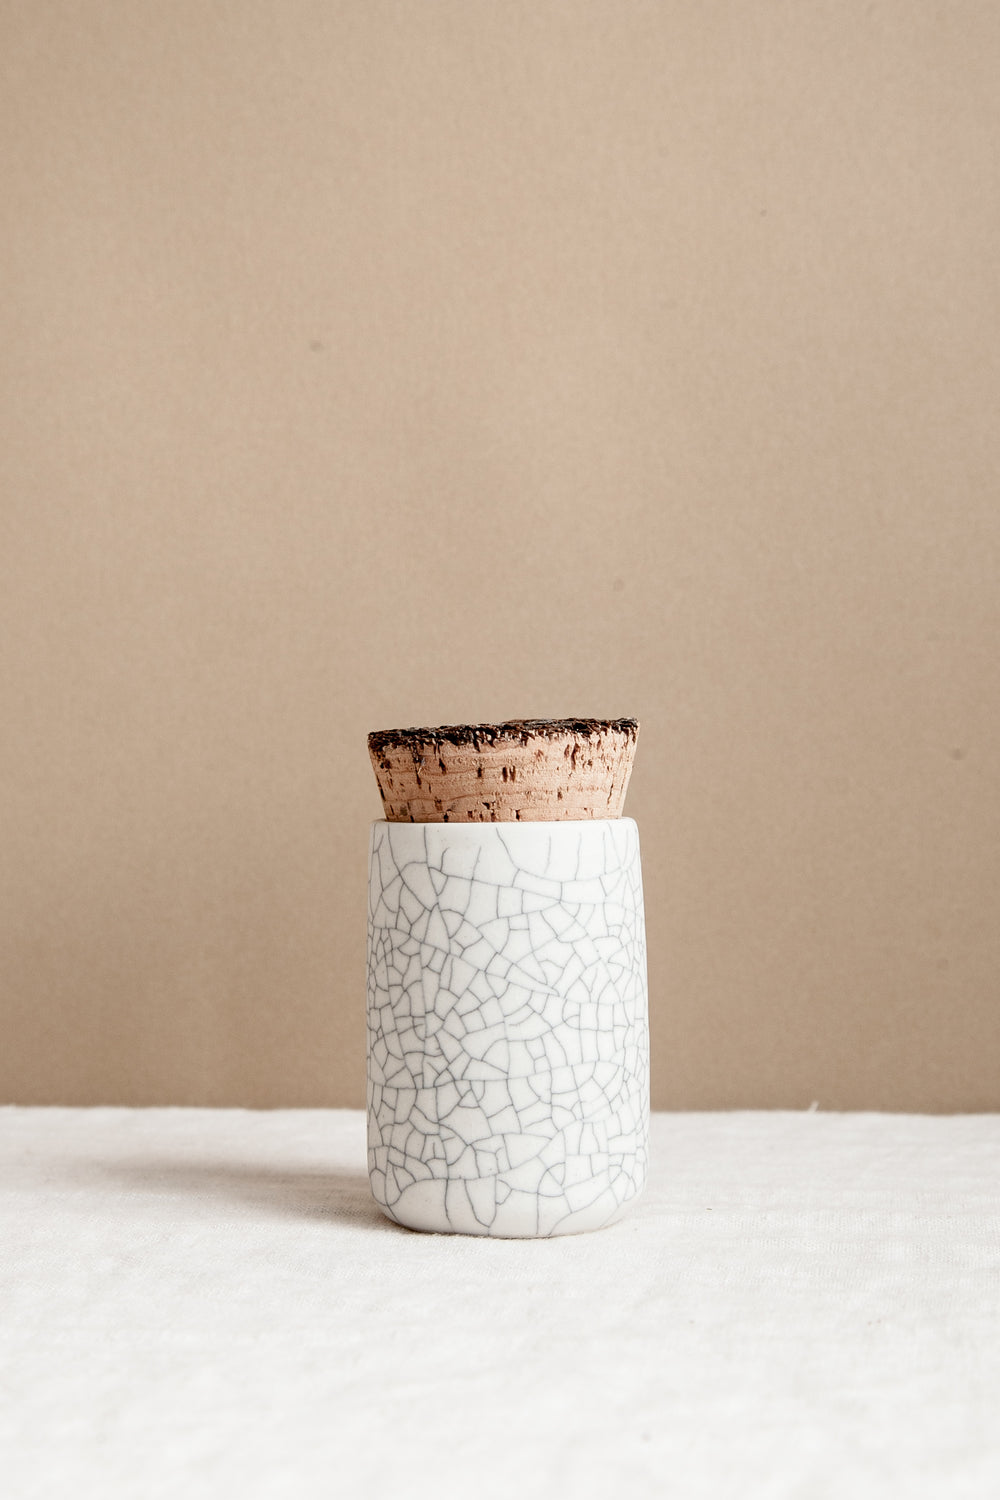 Spice Jar / Crackle